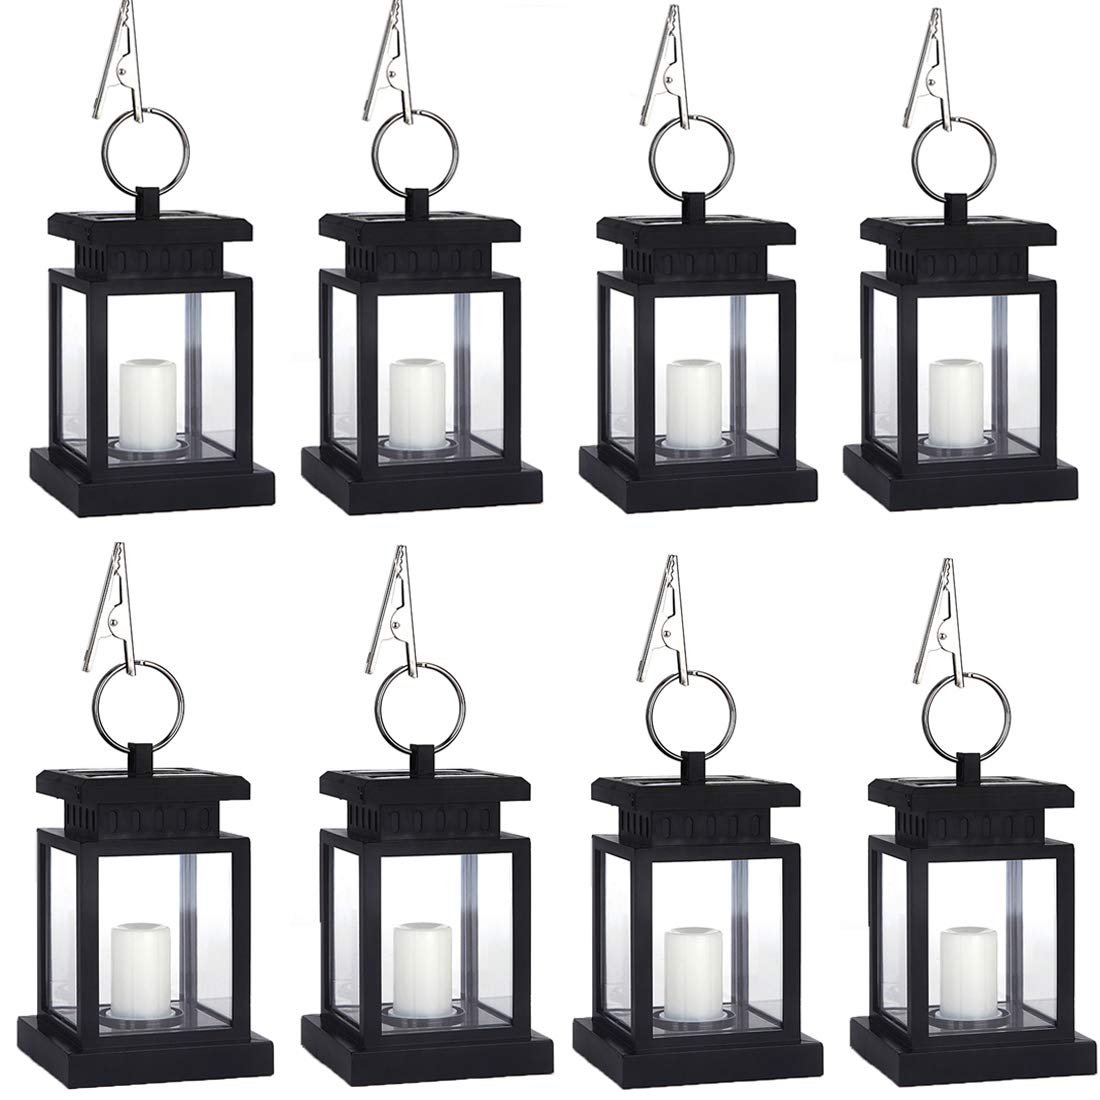 8 Pack Solar Lights Outdoor Hanging Lantern, Solar LED Candle Light for Garden Decor Pathway Yard Fence, Warm White